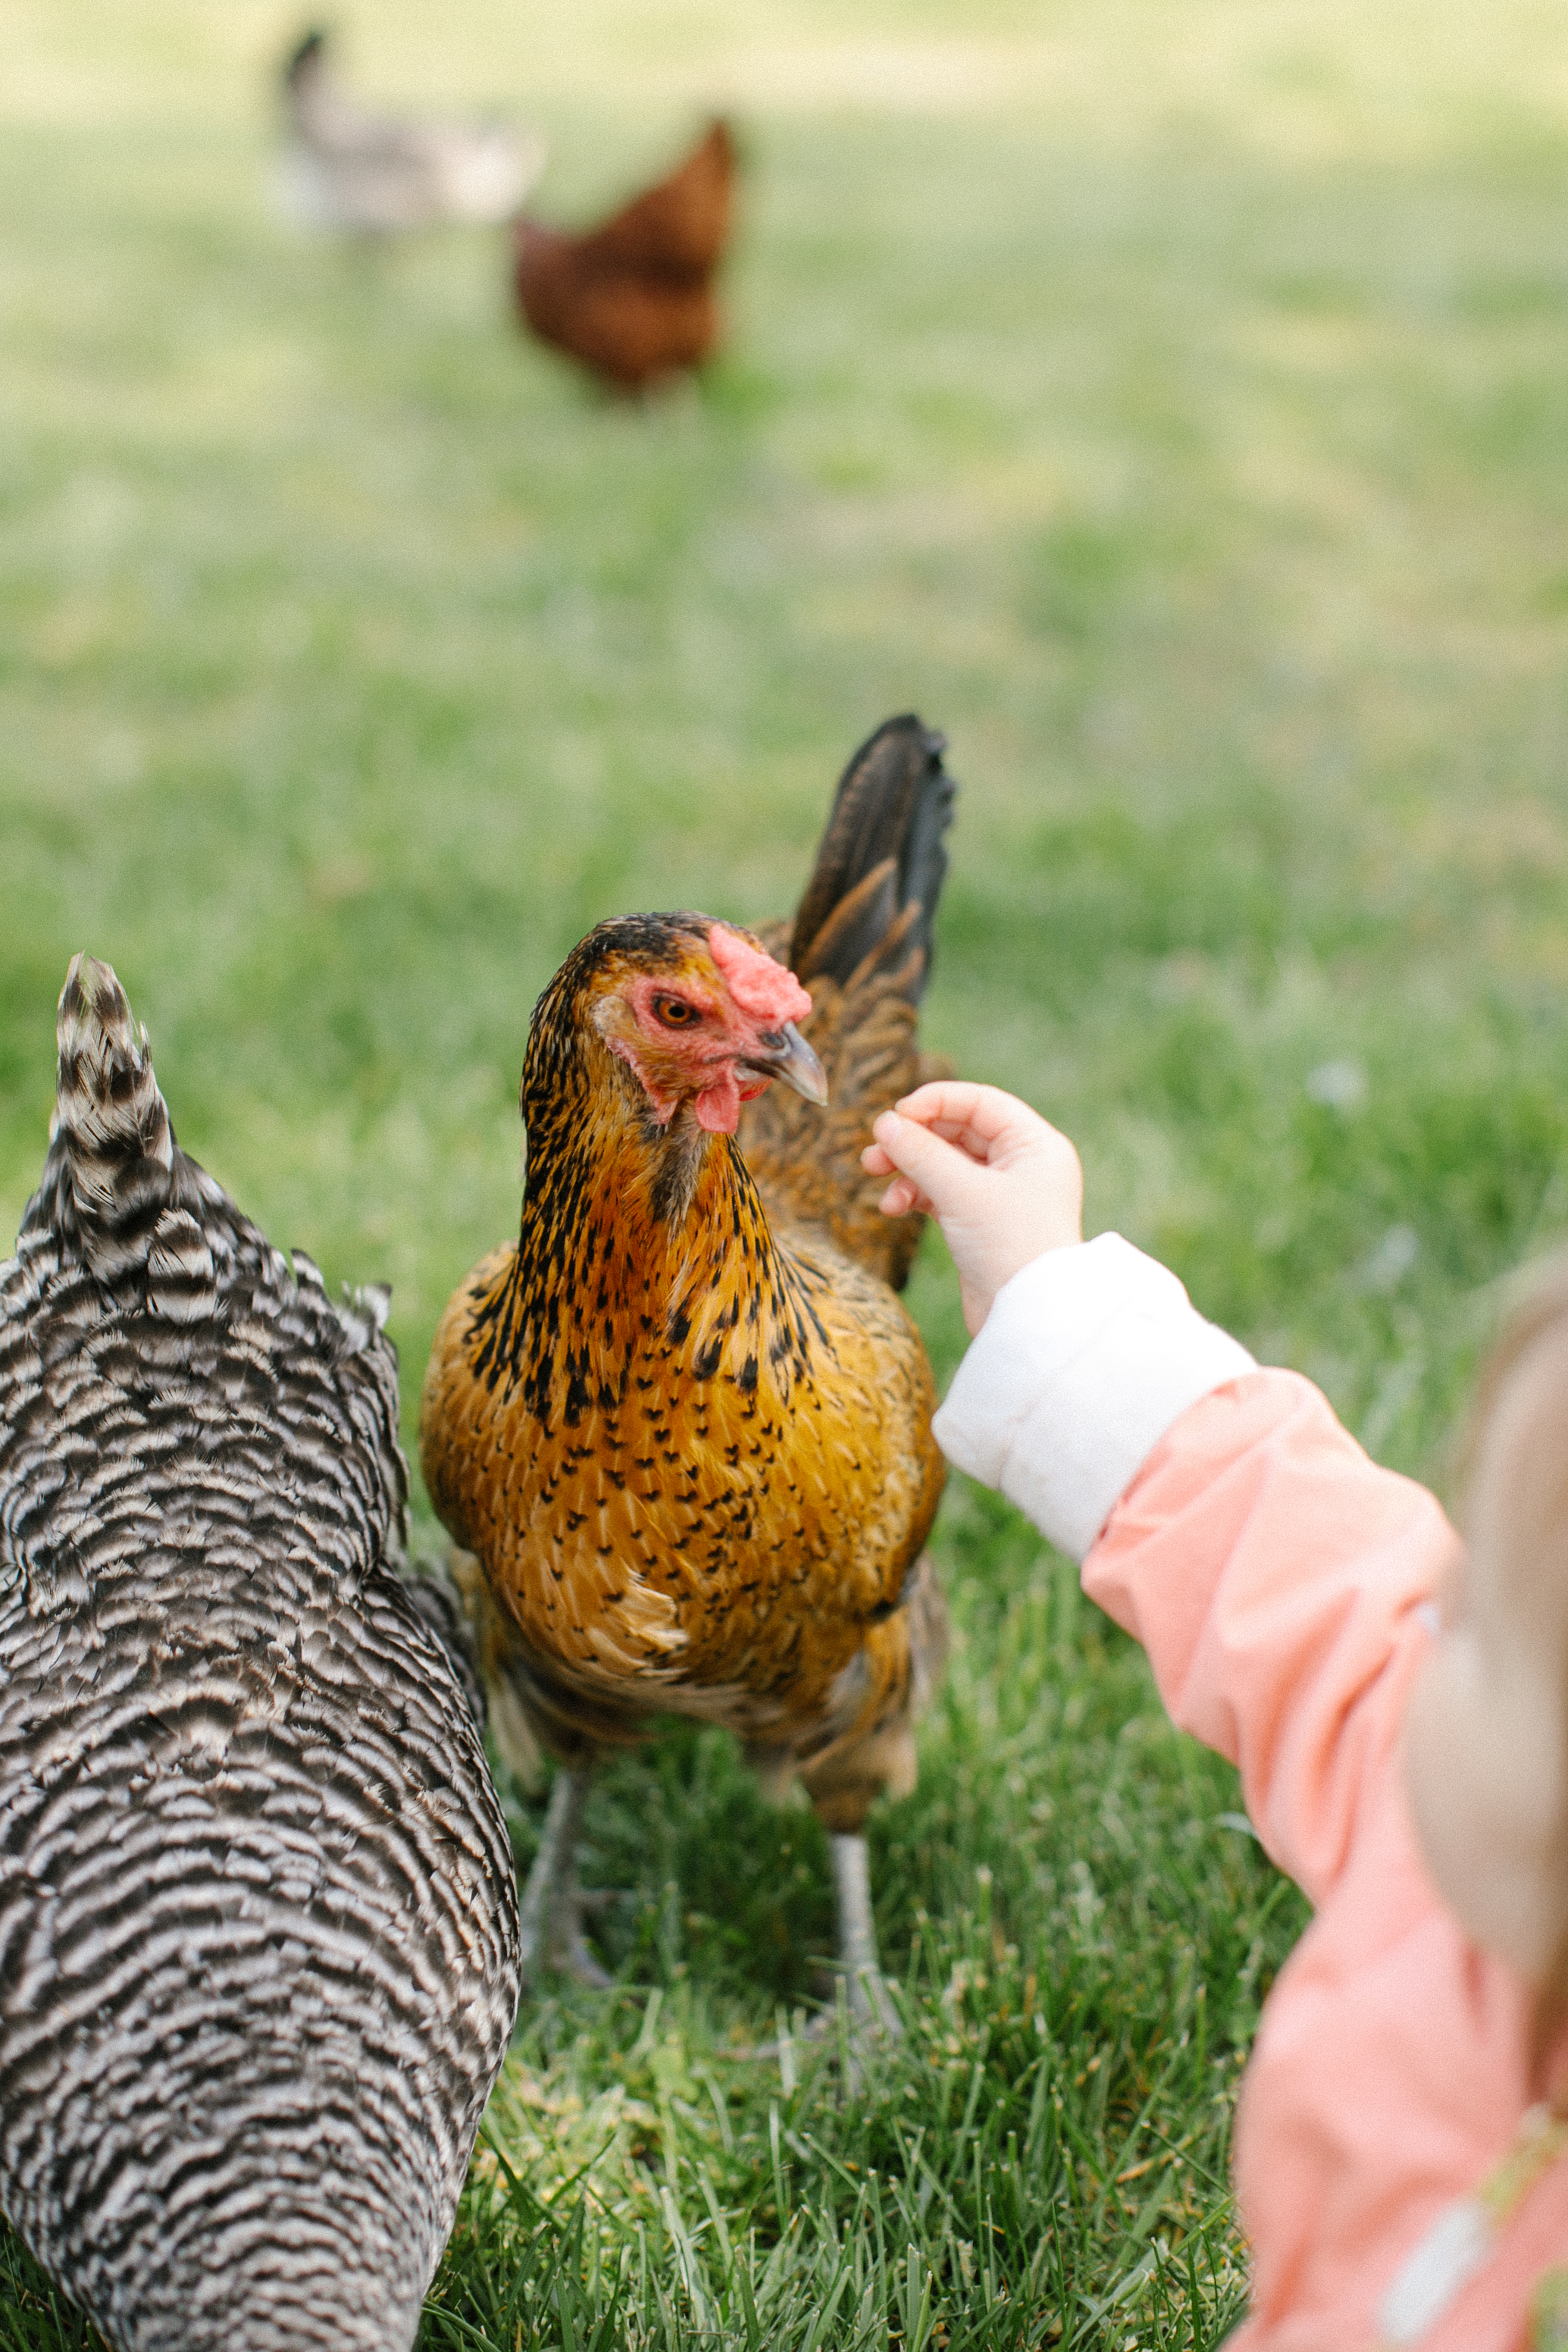 How To Raise Chickens - Everything You Need To Know To Start Your Own Sustainable Chicken Coop - Owning and Raising Chickens - Sustainable Living - Raising Backyard Chickens - DIY Chicken Coop - Chickens At Home - Chickens For Beginners - Communikait by Kait Hanson